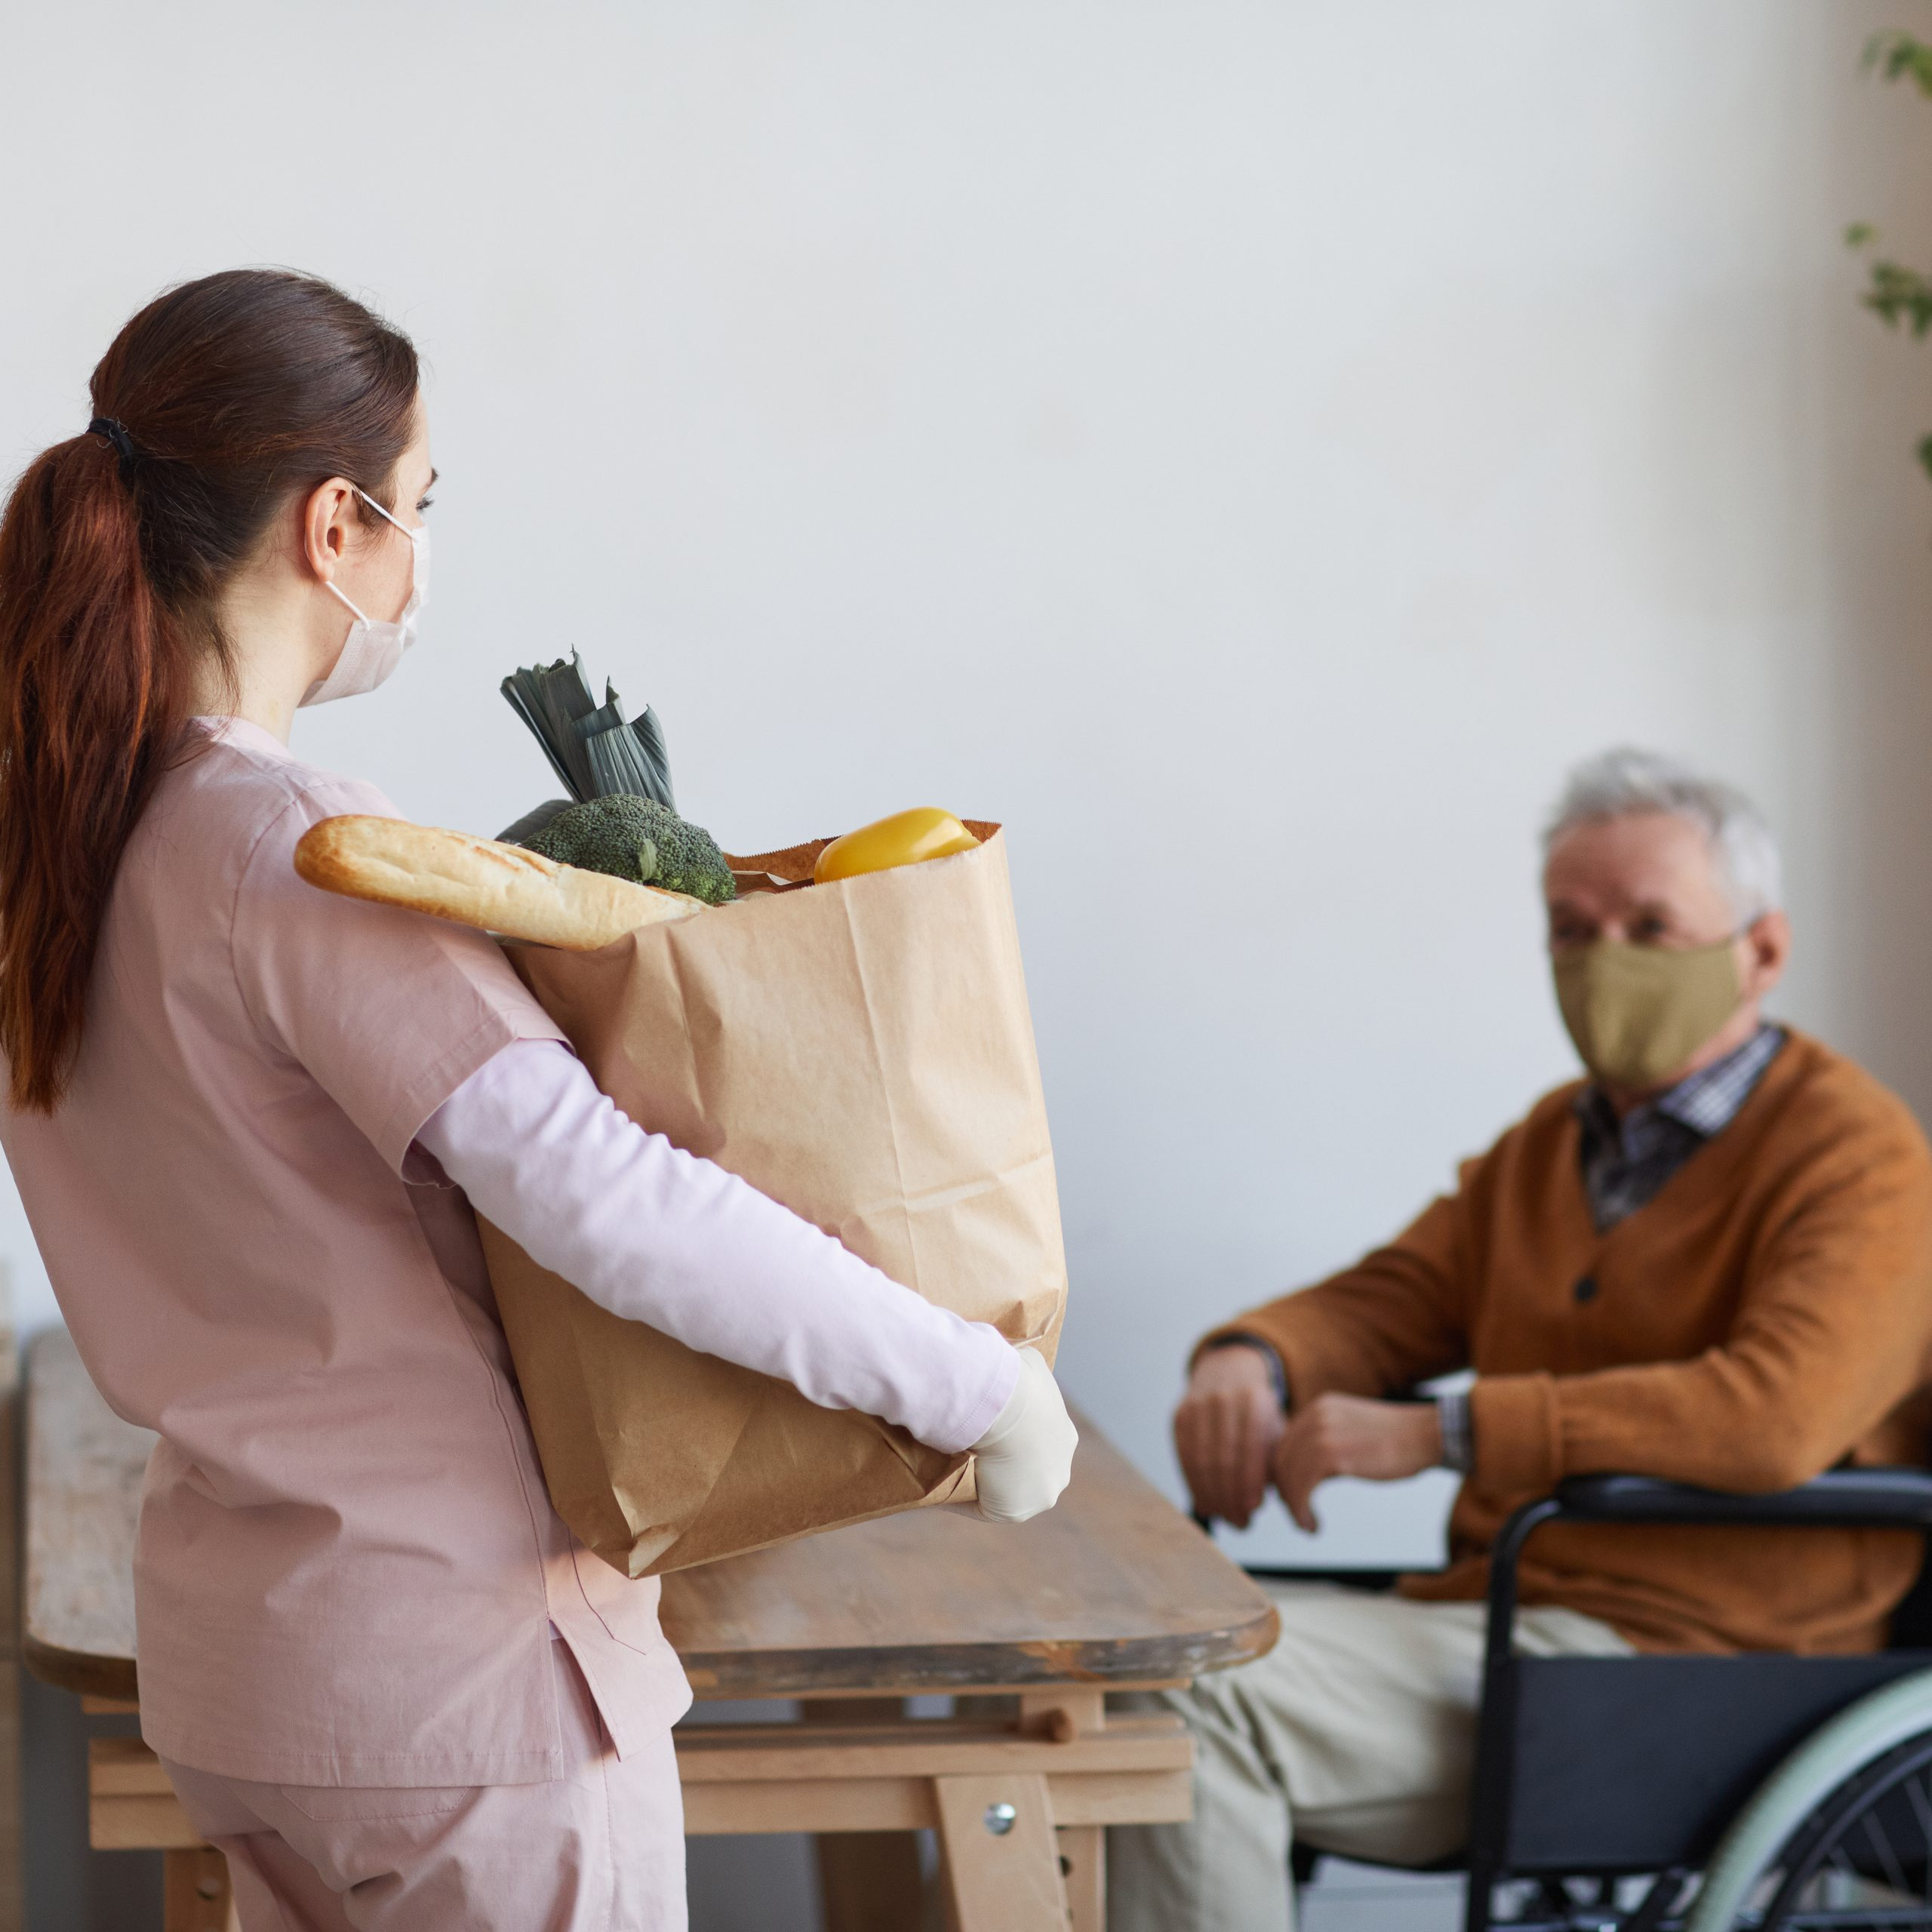 Caregiver delivery groceries to man